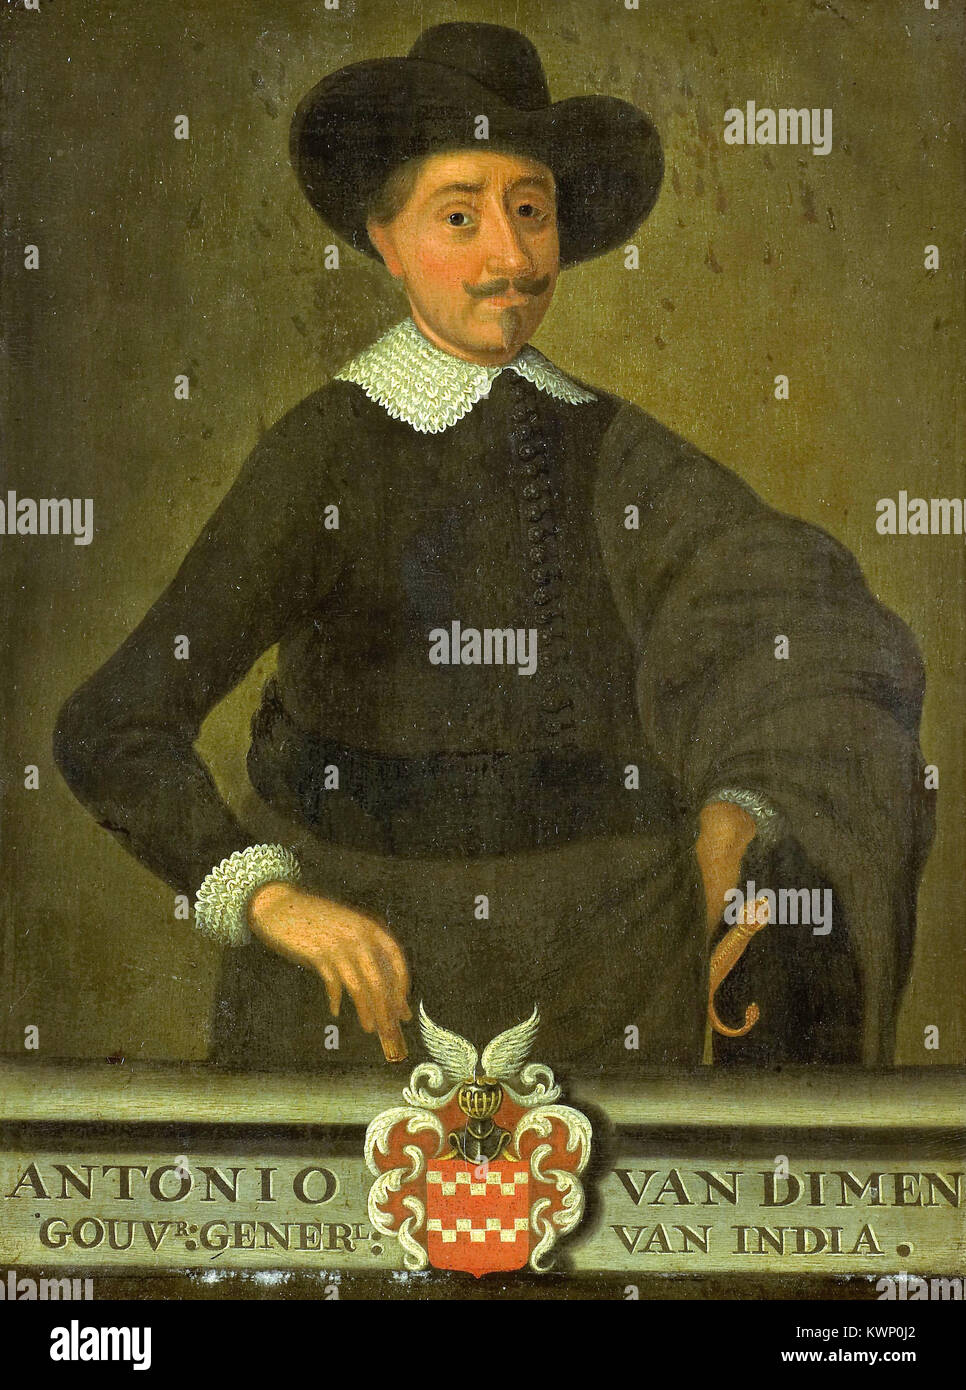 Anthony van Diemen (1593 – 19 April 1645) Dutch colonial governor - Stock Image